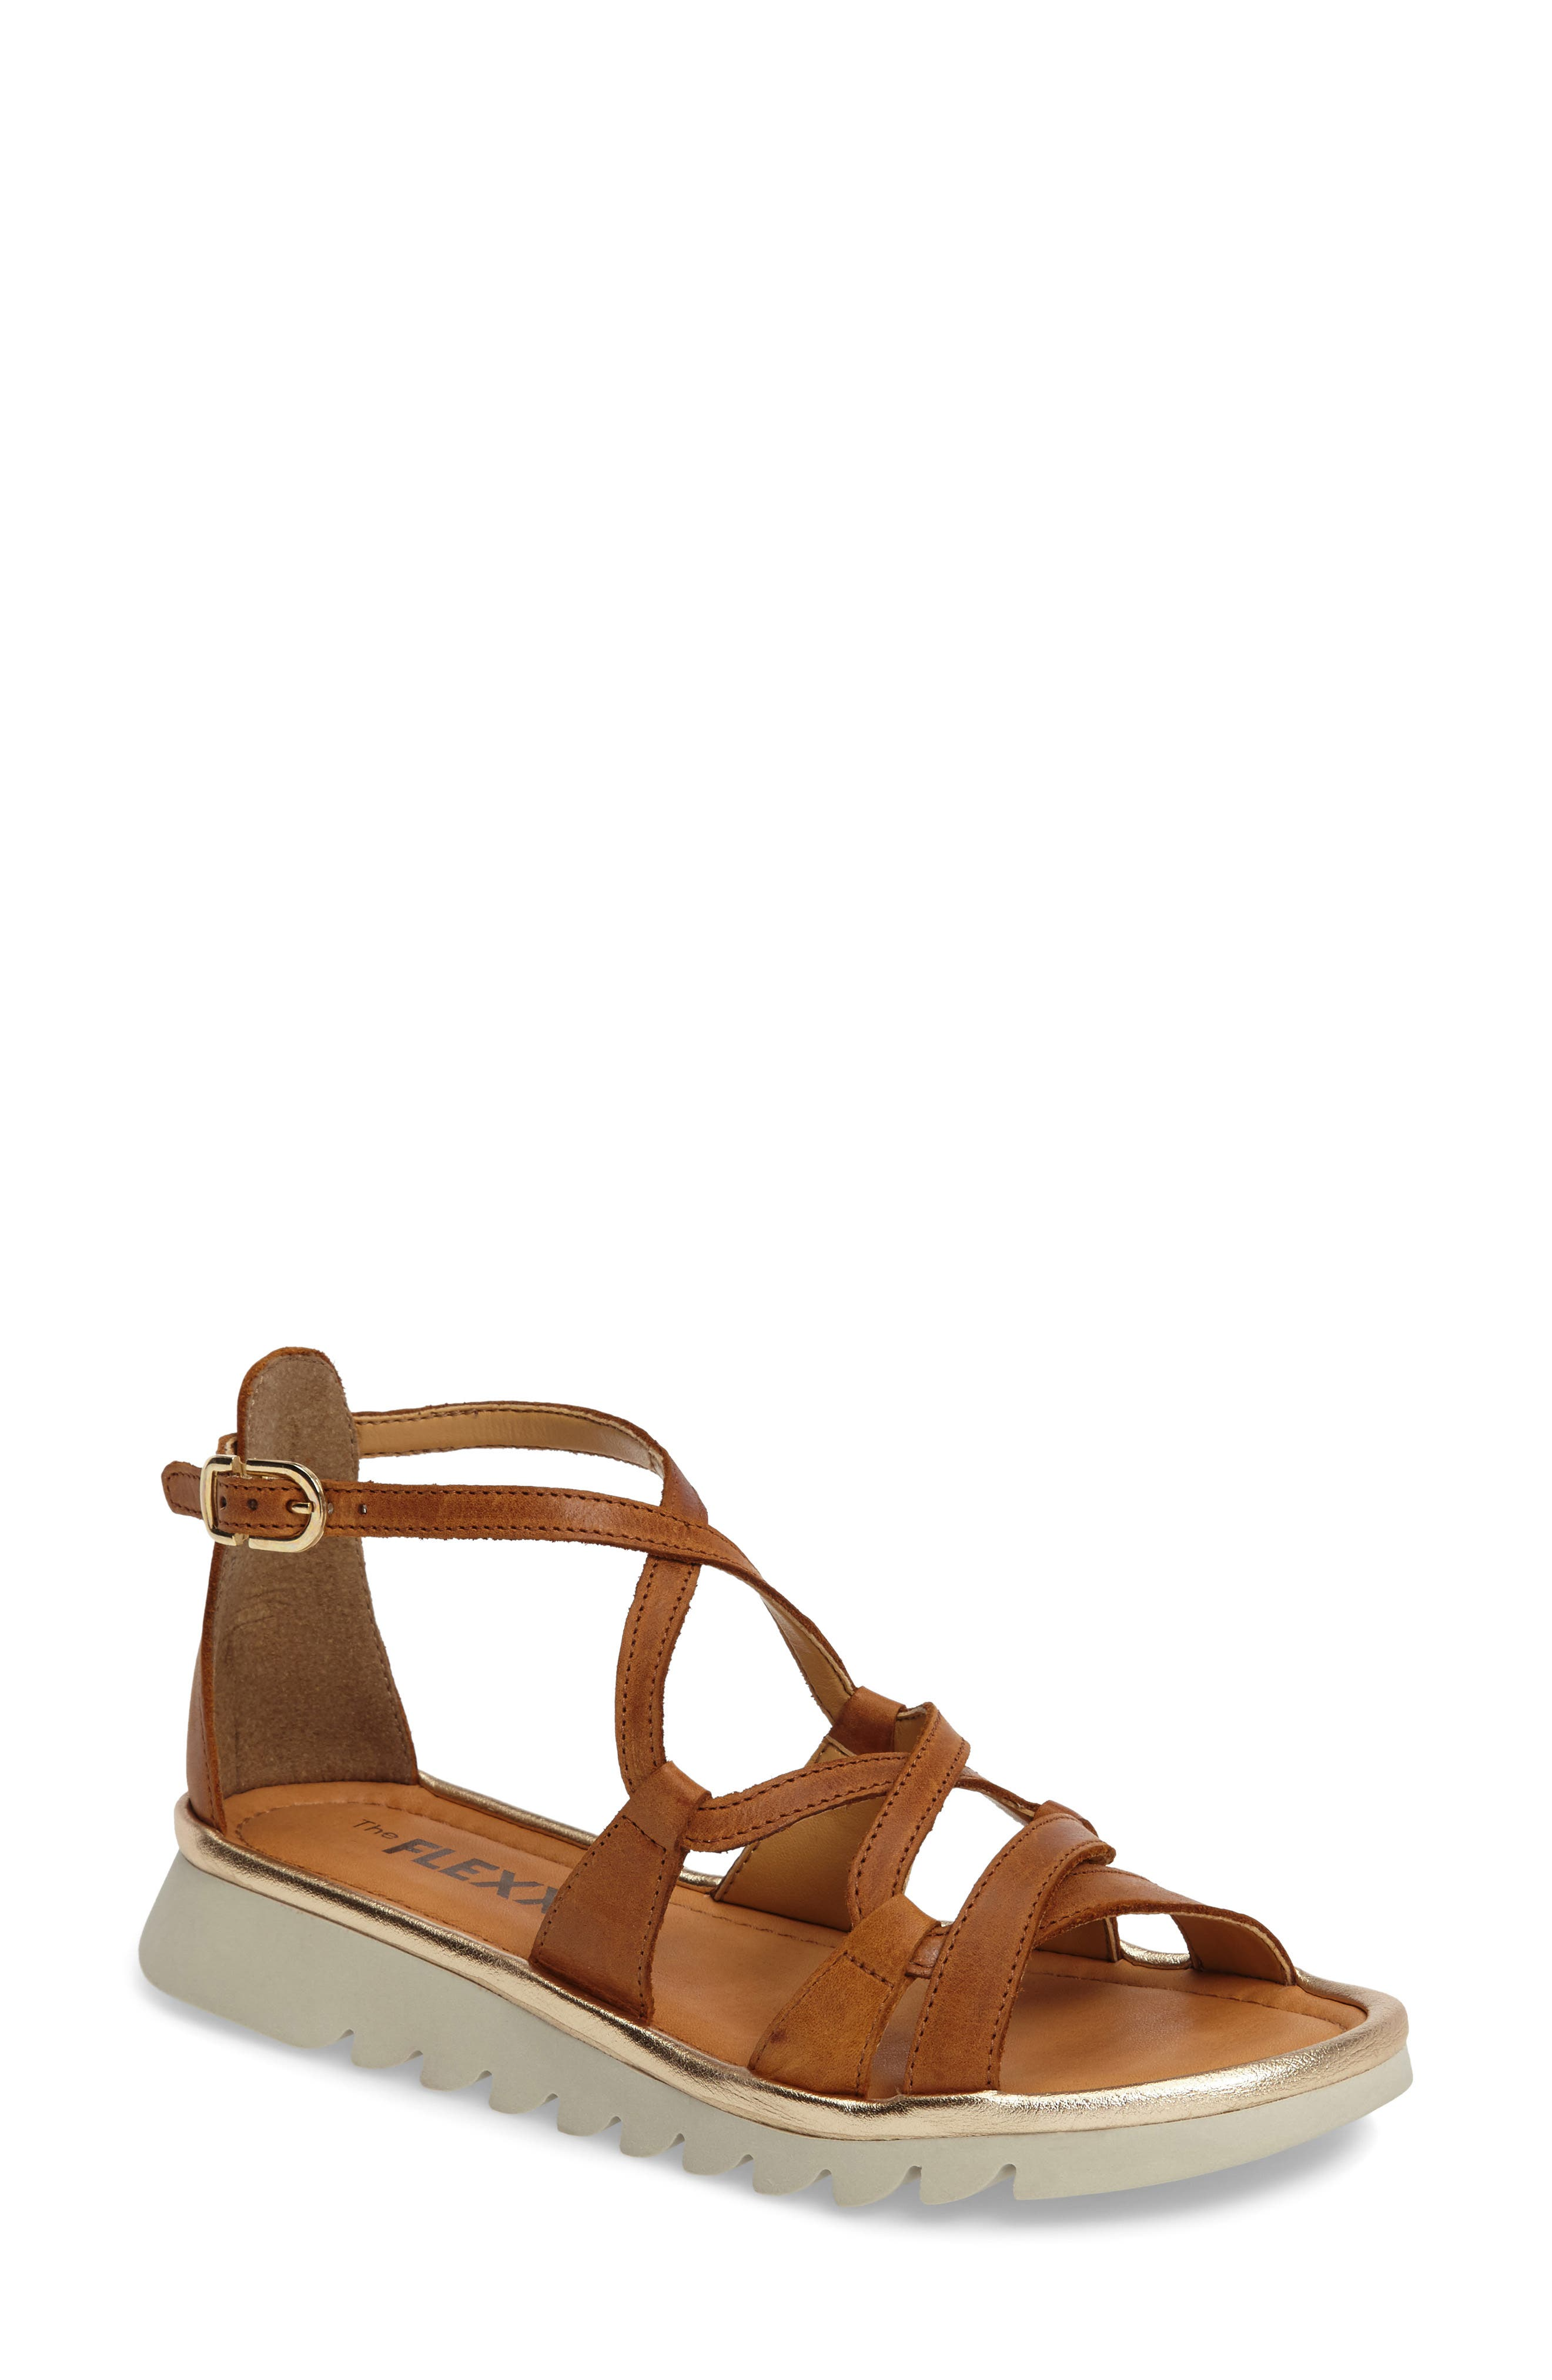 Catch a Wave Sandal,                         Main,                         color, Cognac Leather